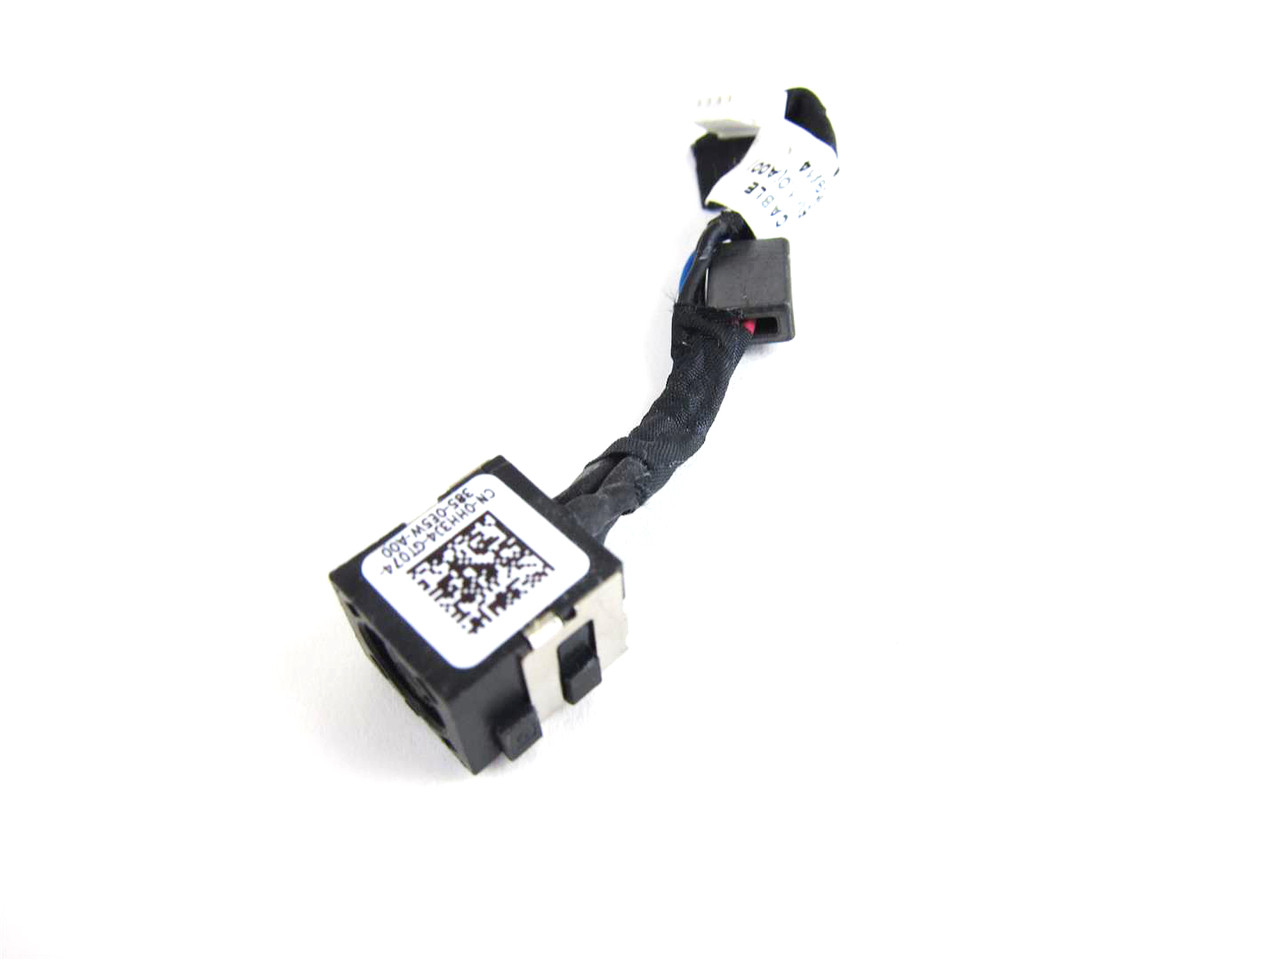 Dell Latitude E6440 DC Power Charger Jack with Cable - HH3J4